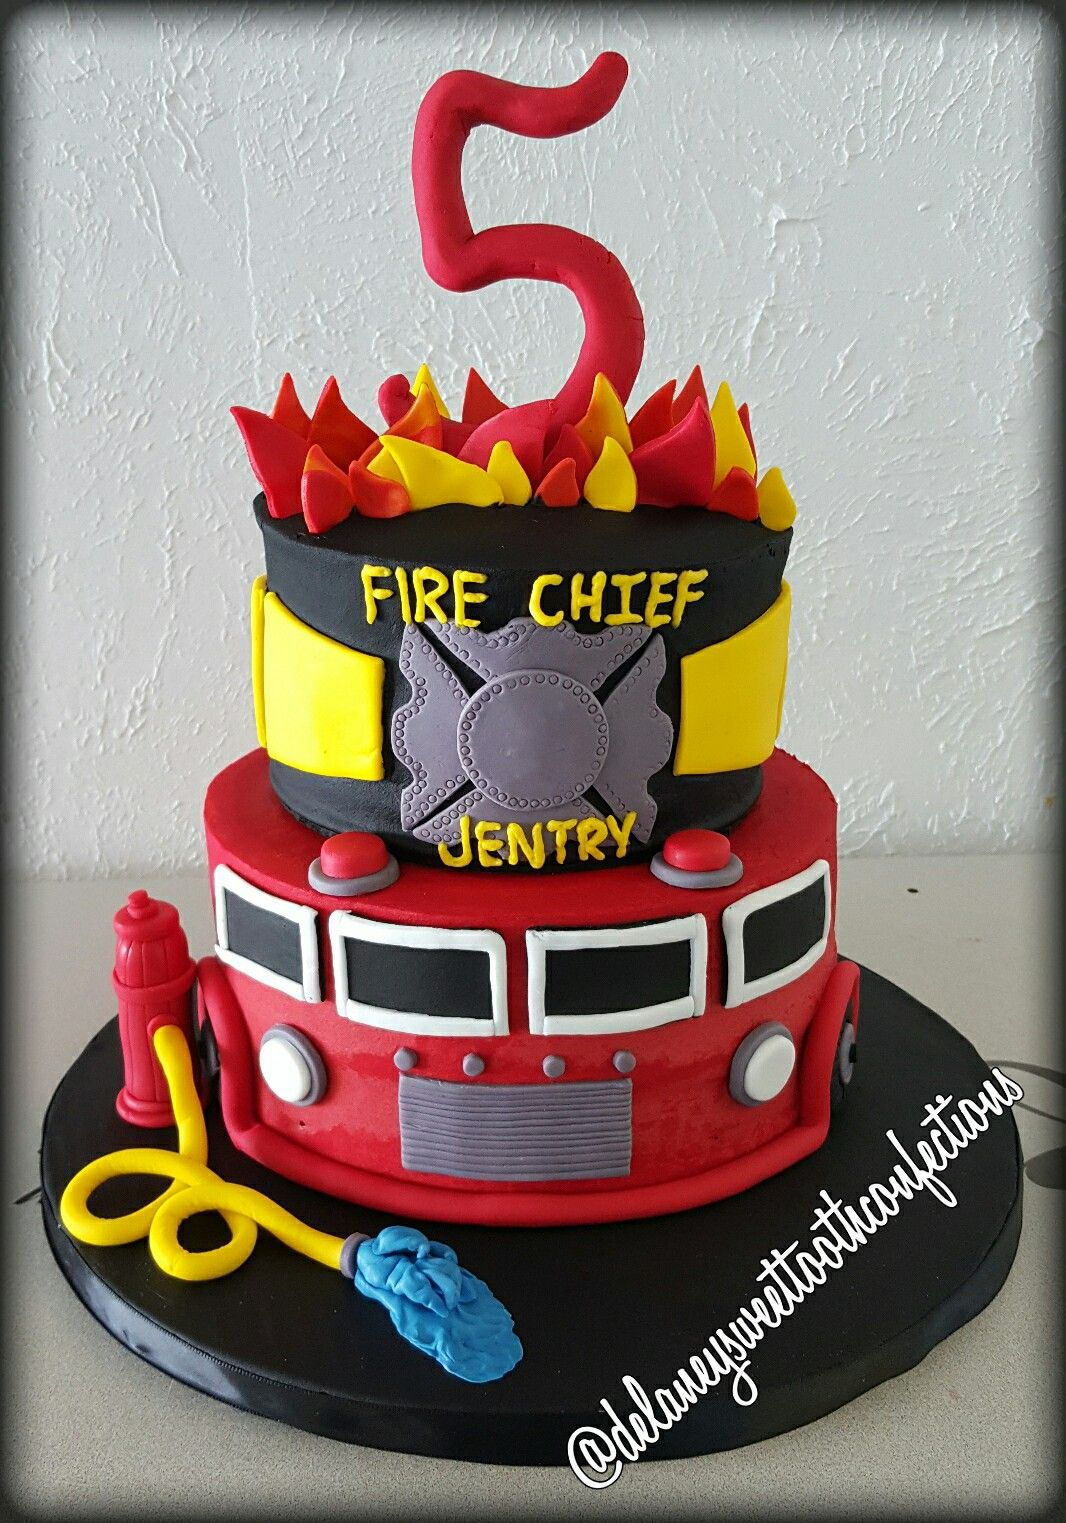 Swell Firetruck Theme Cake With Images Firefighter Birthday Cakes Personalised Birthday Cards Veneteletsinfo